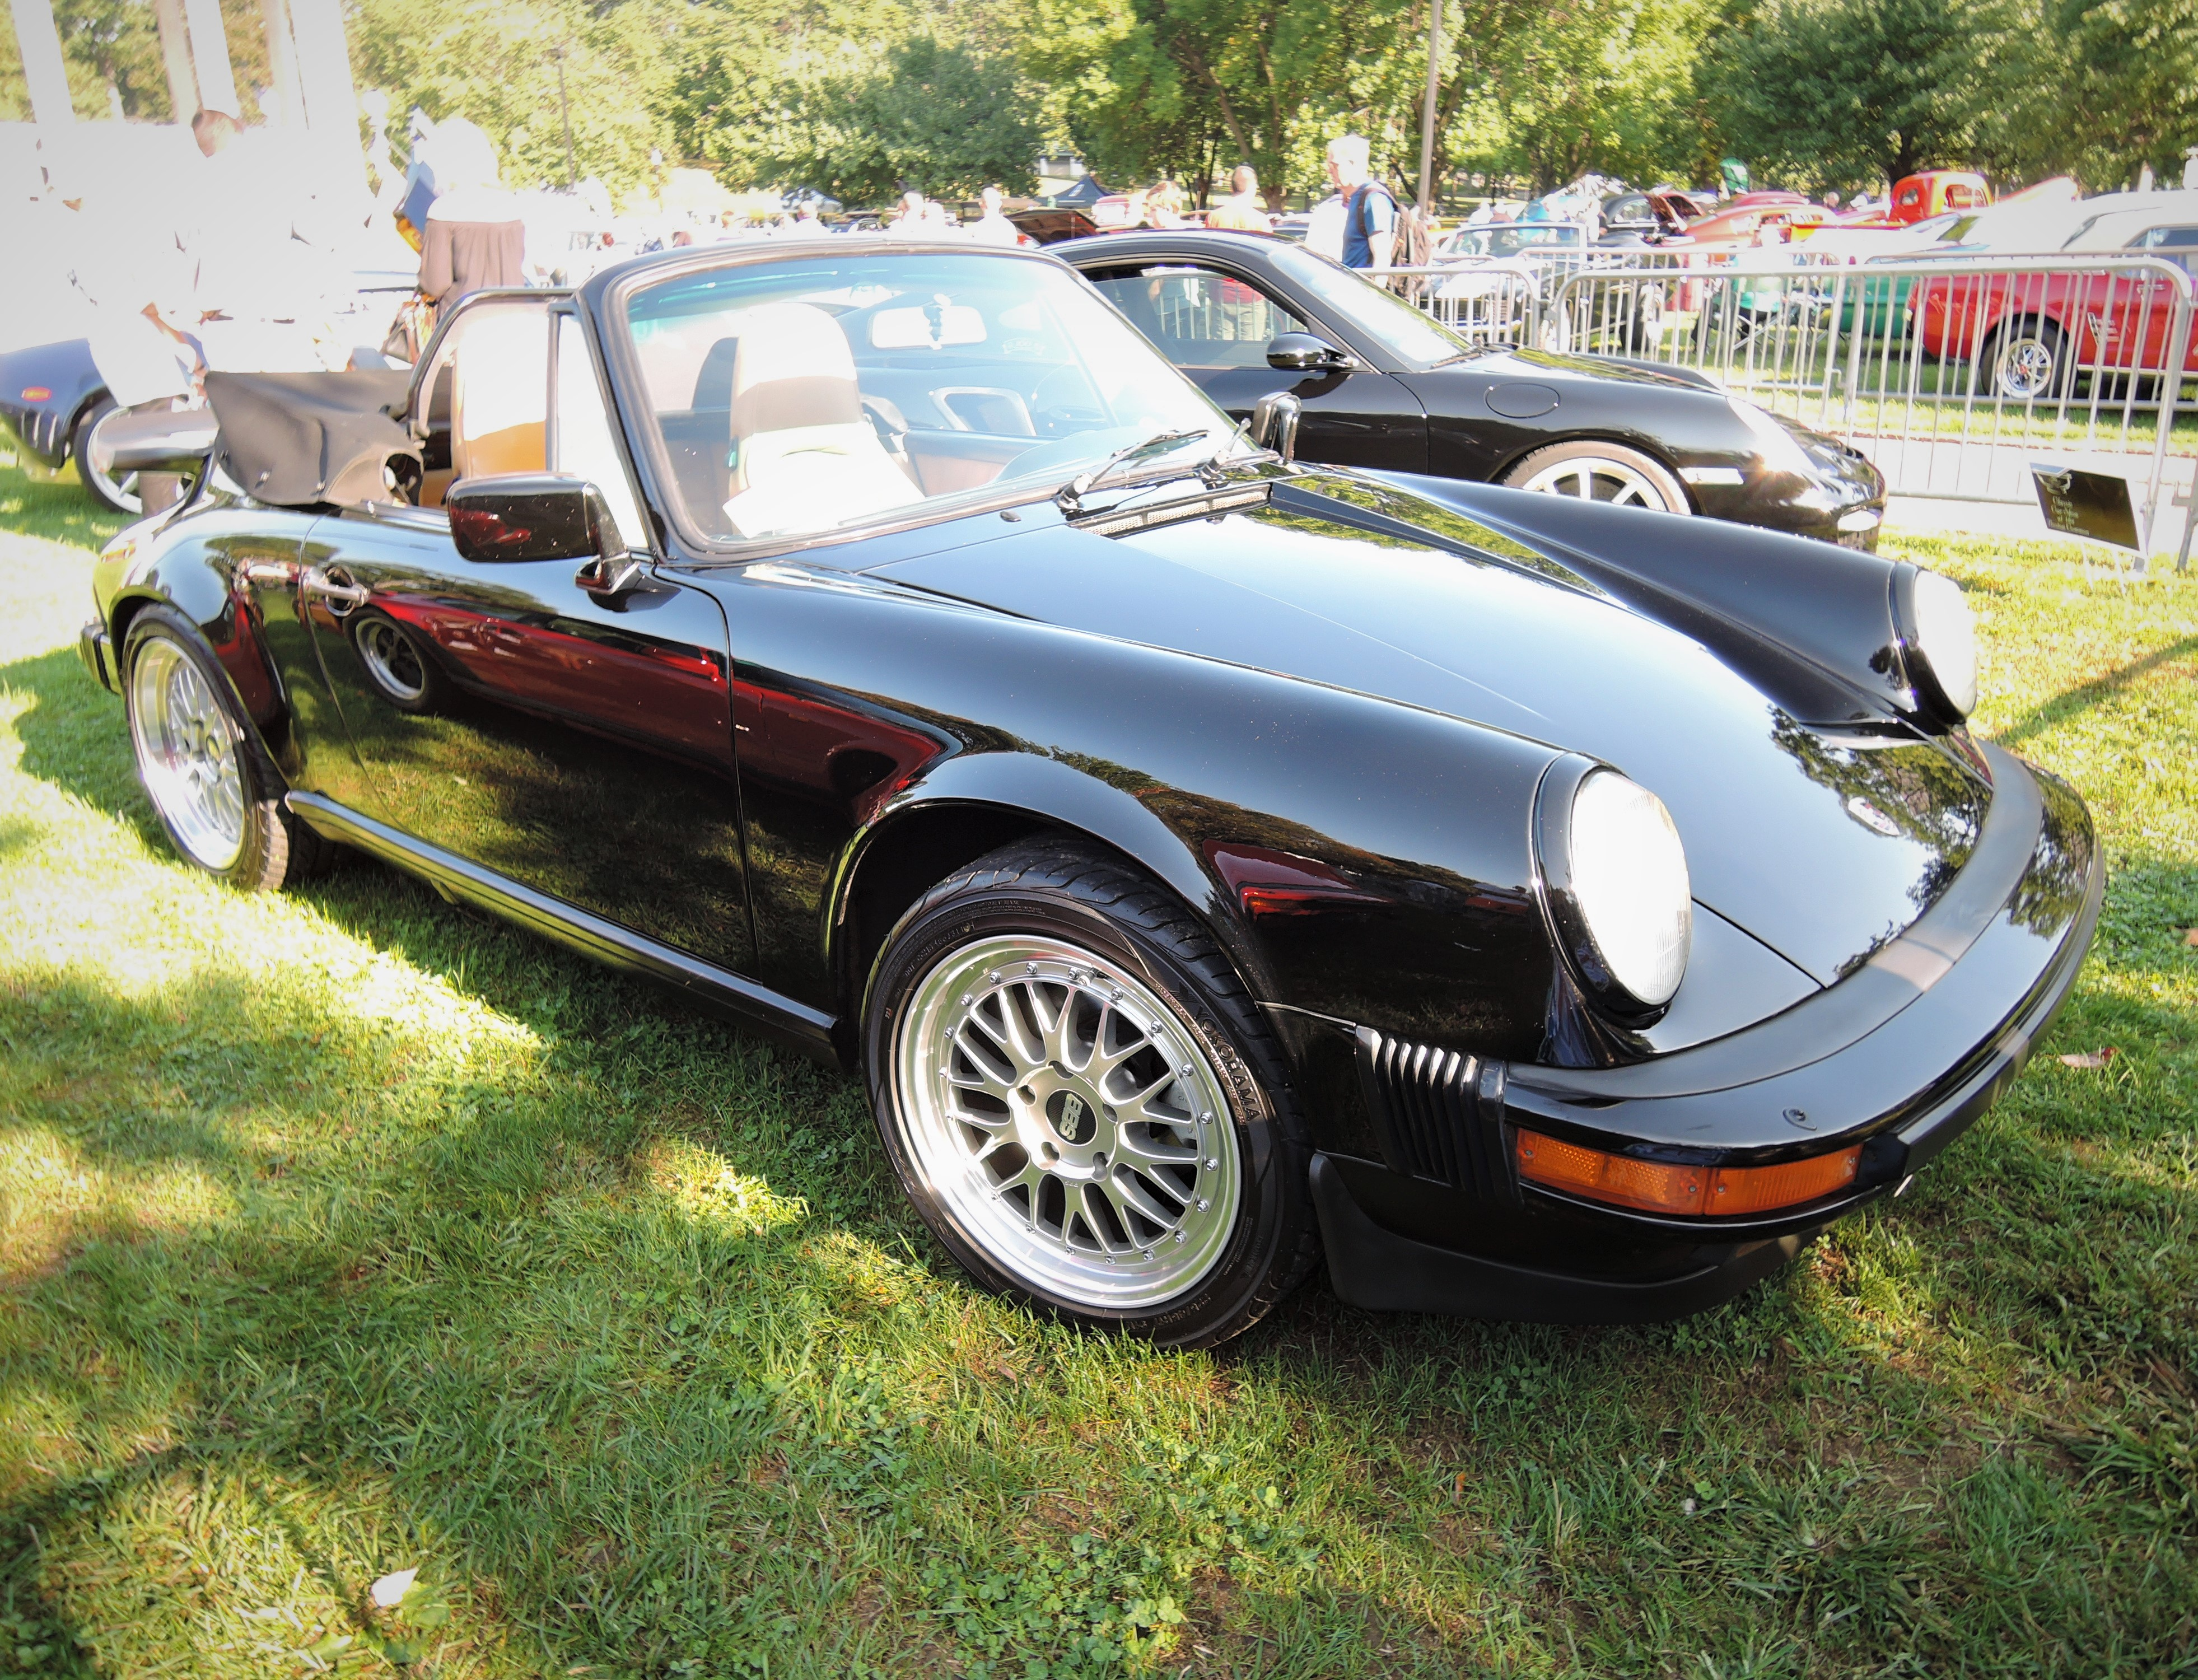 brown 1986 Porsche 911 Cabriolet - The Boston Cup 2017